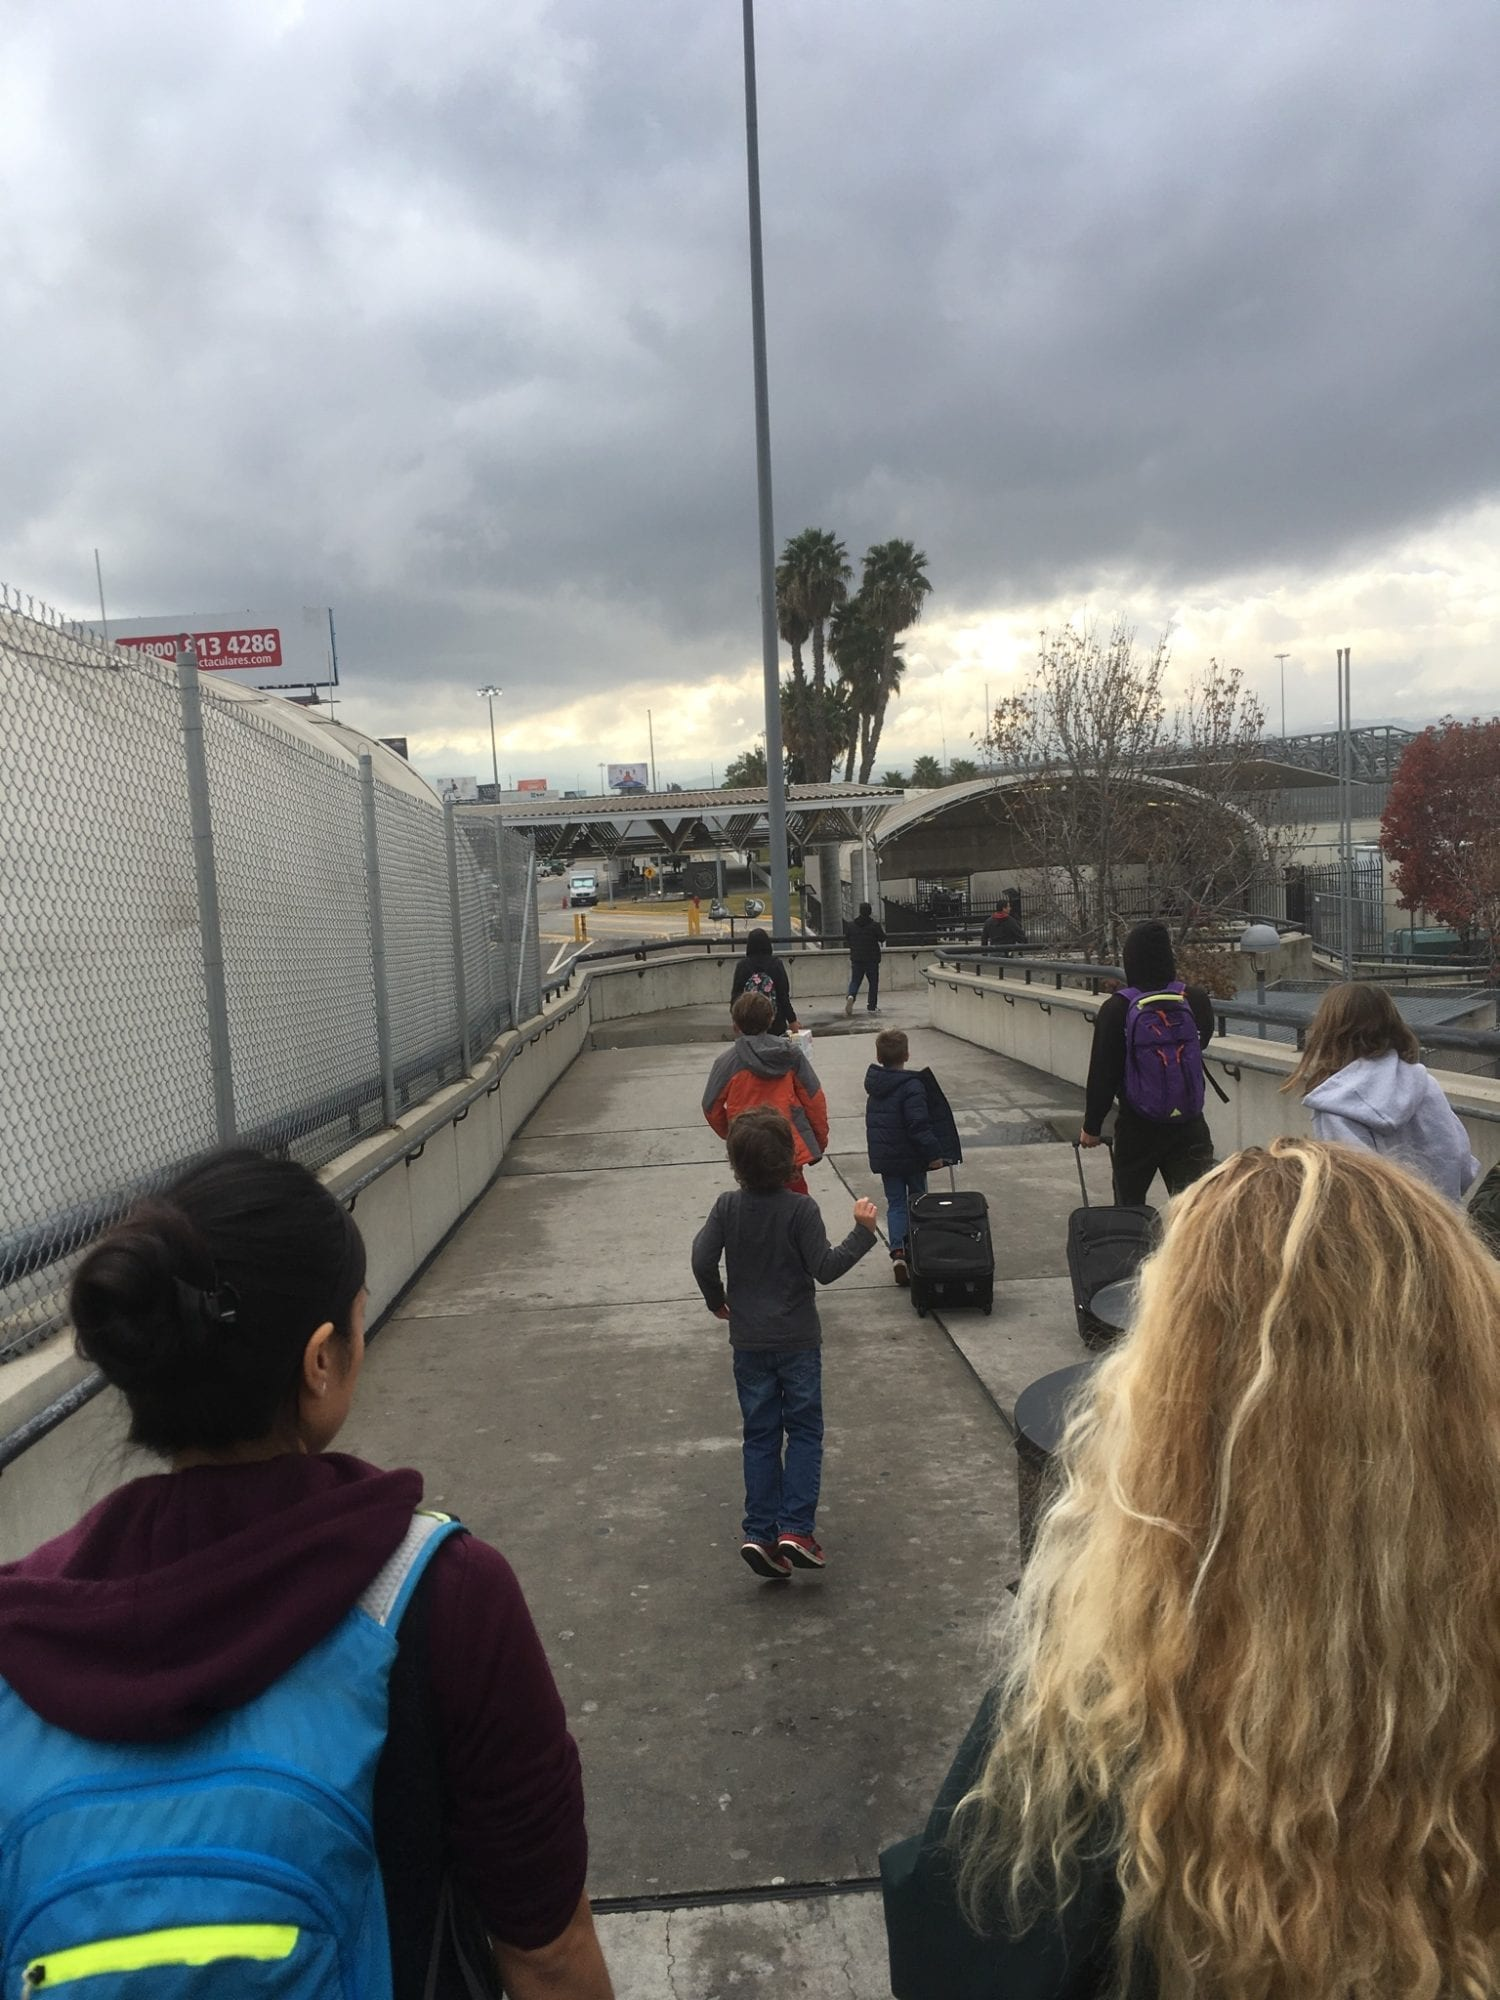 Twenty Miles: Refugee Immigration Crisis Near San Diego, U.S.A.